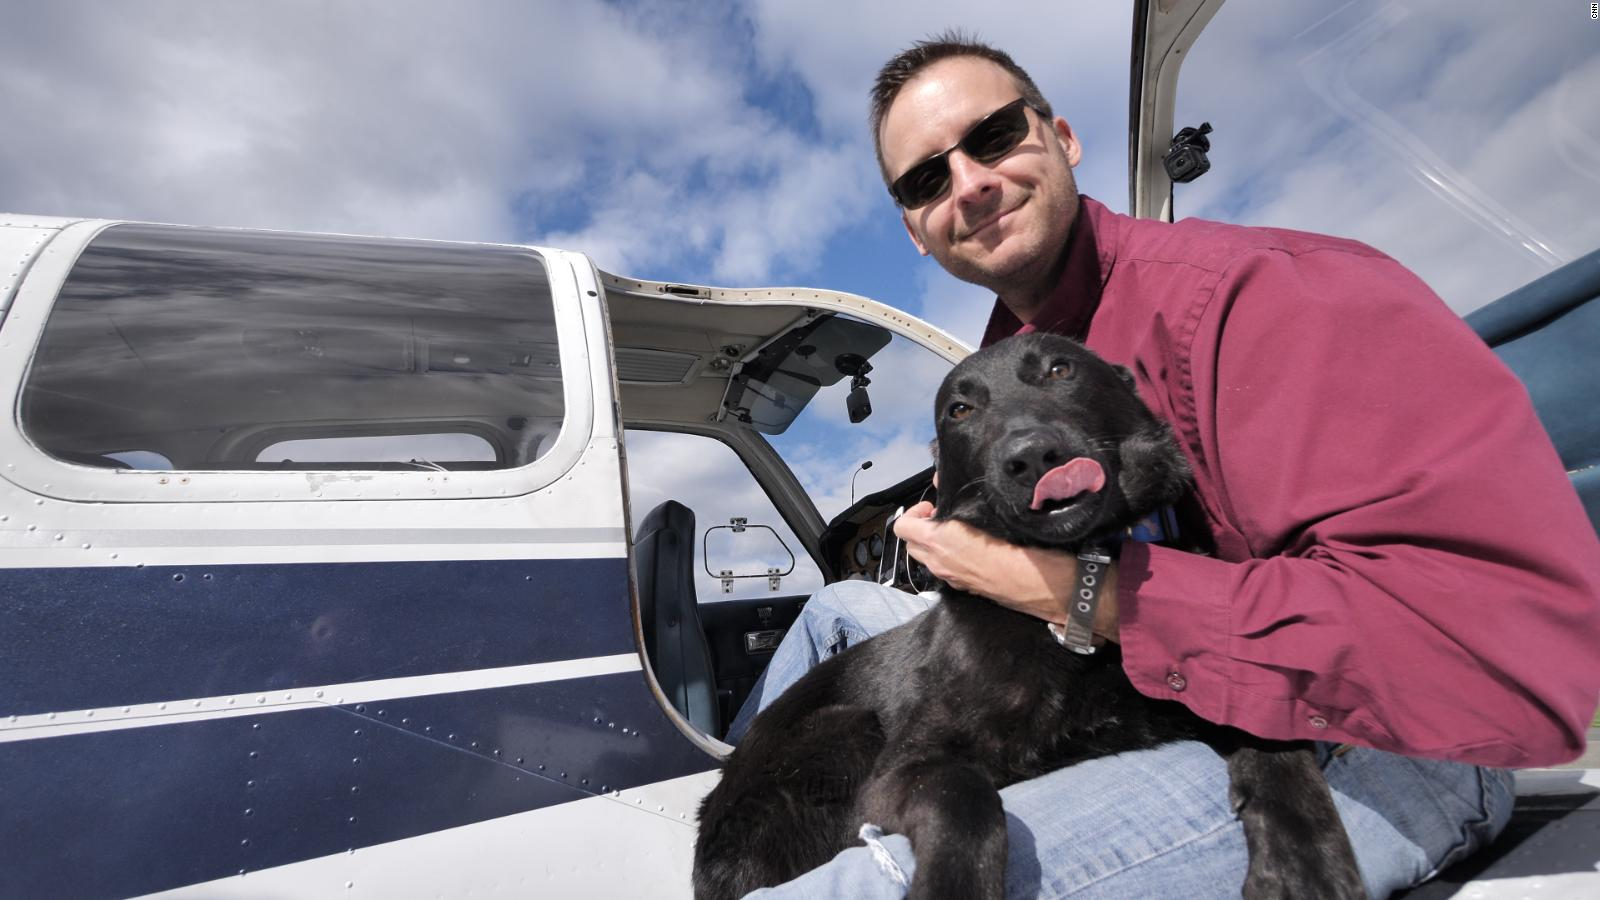 Dog lover flies paw sengers to safety